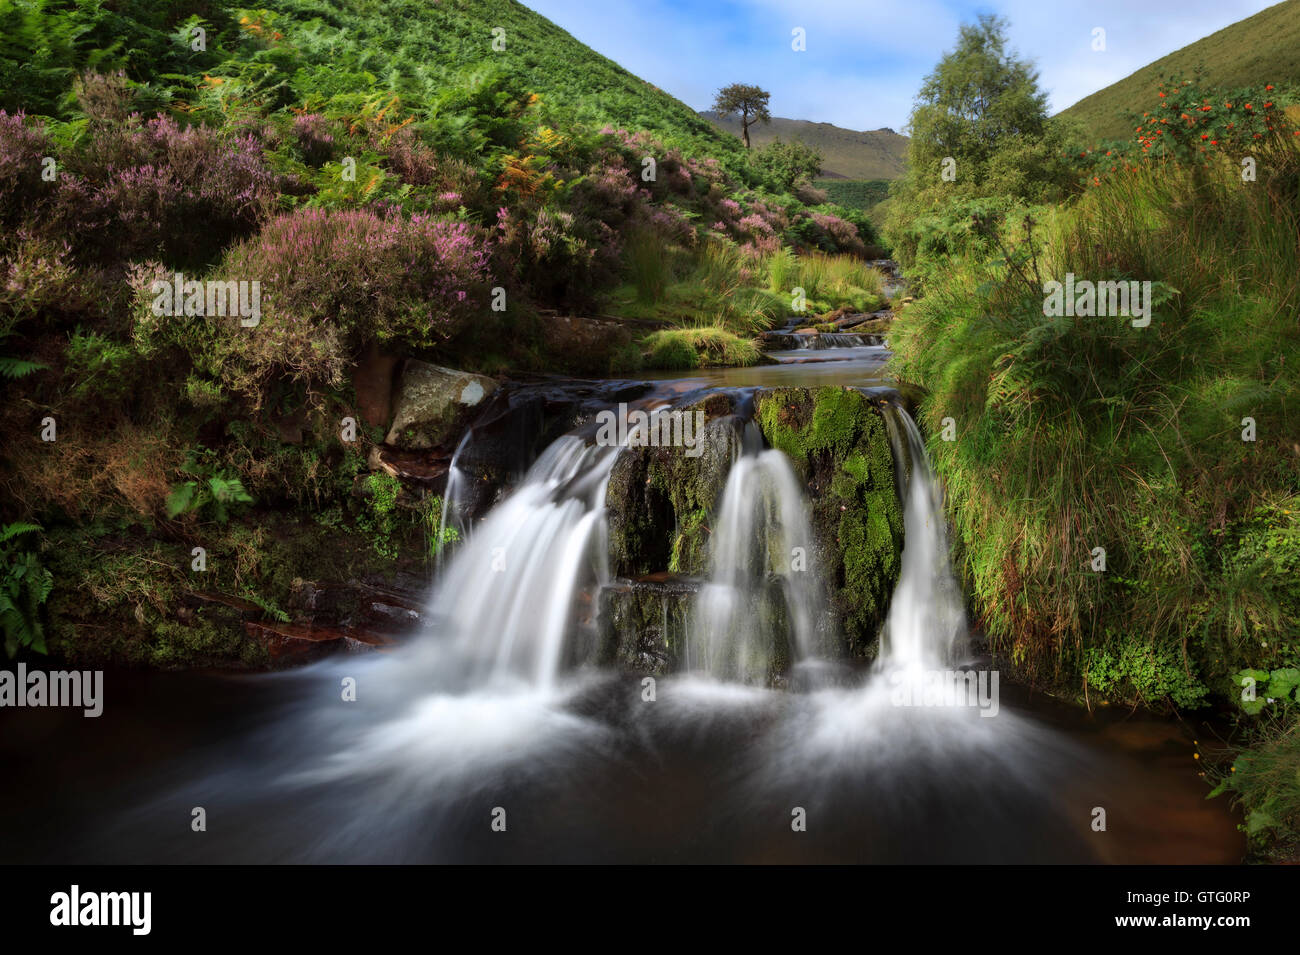 Fairbrook in the Peak District - Stock Image